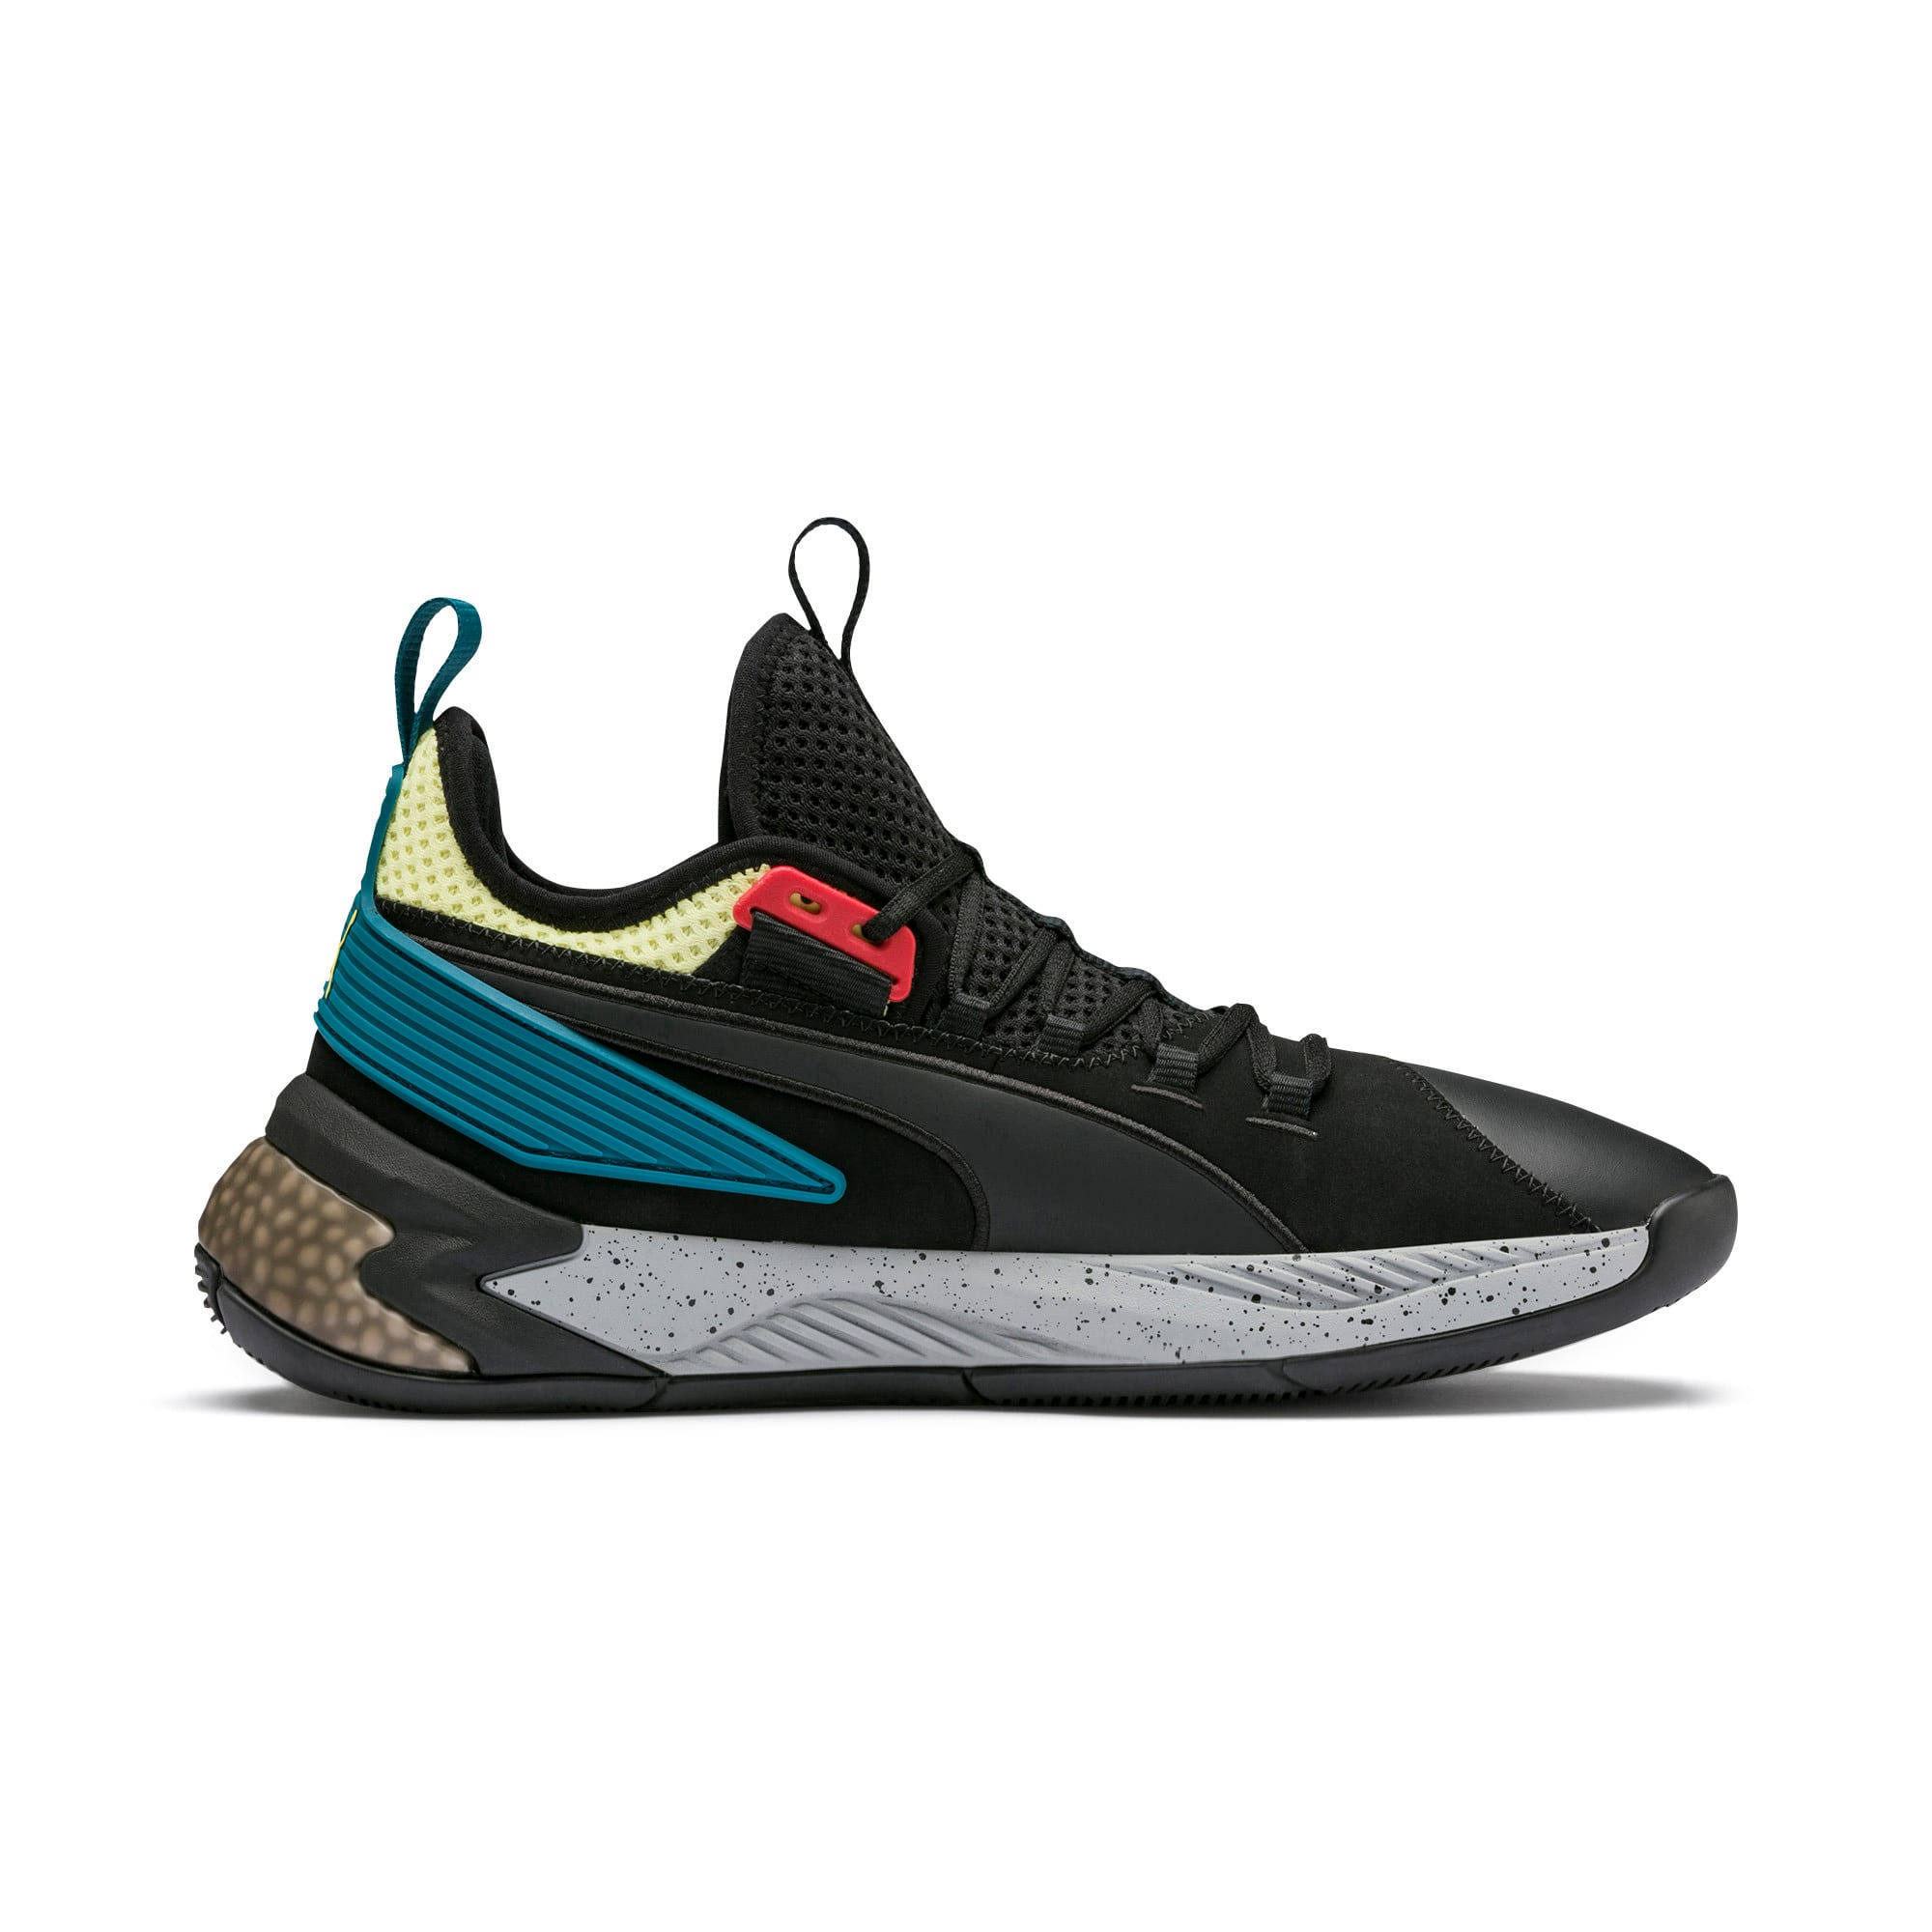 Thumbnail 5 of Uproar Spectra Basketball Shoes, Puma Black-Limelight, medium